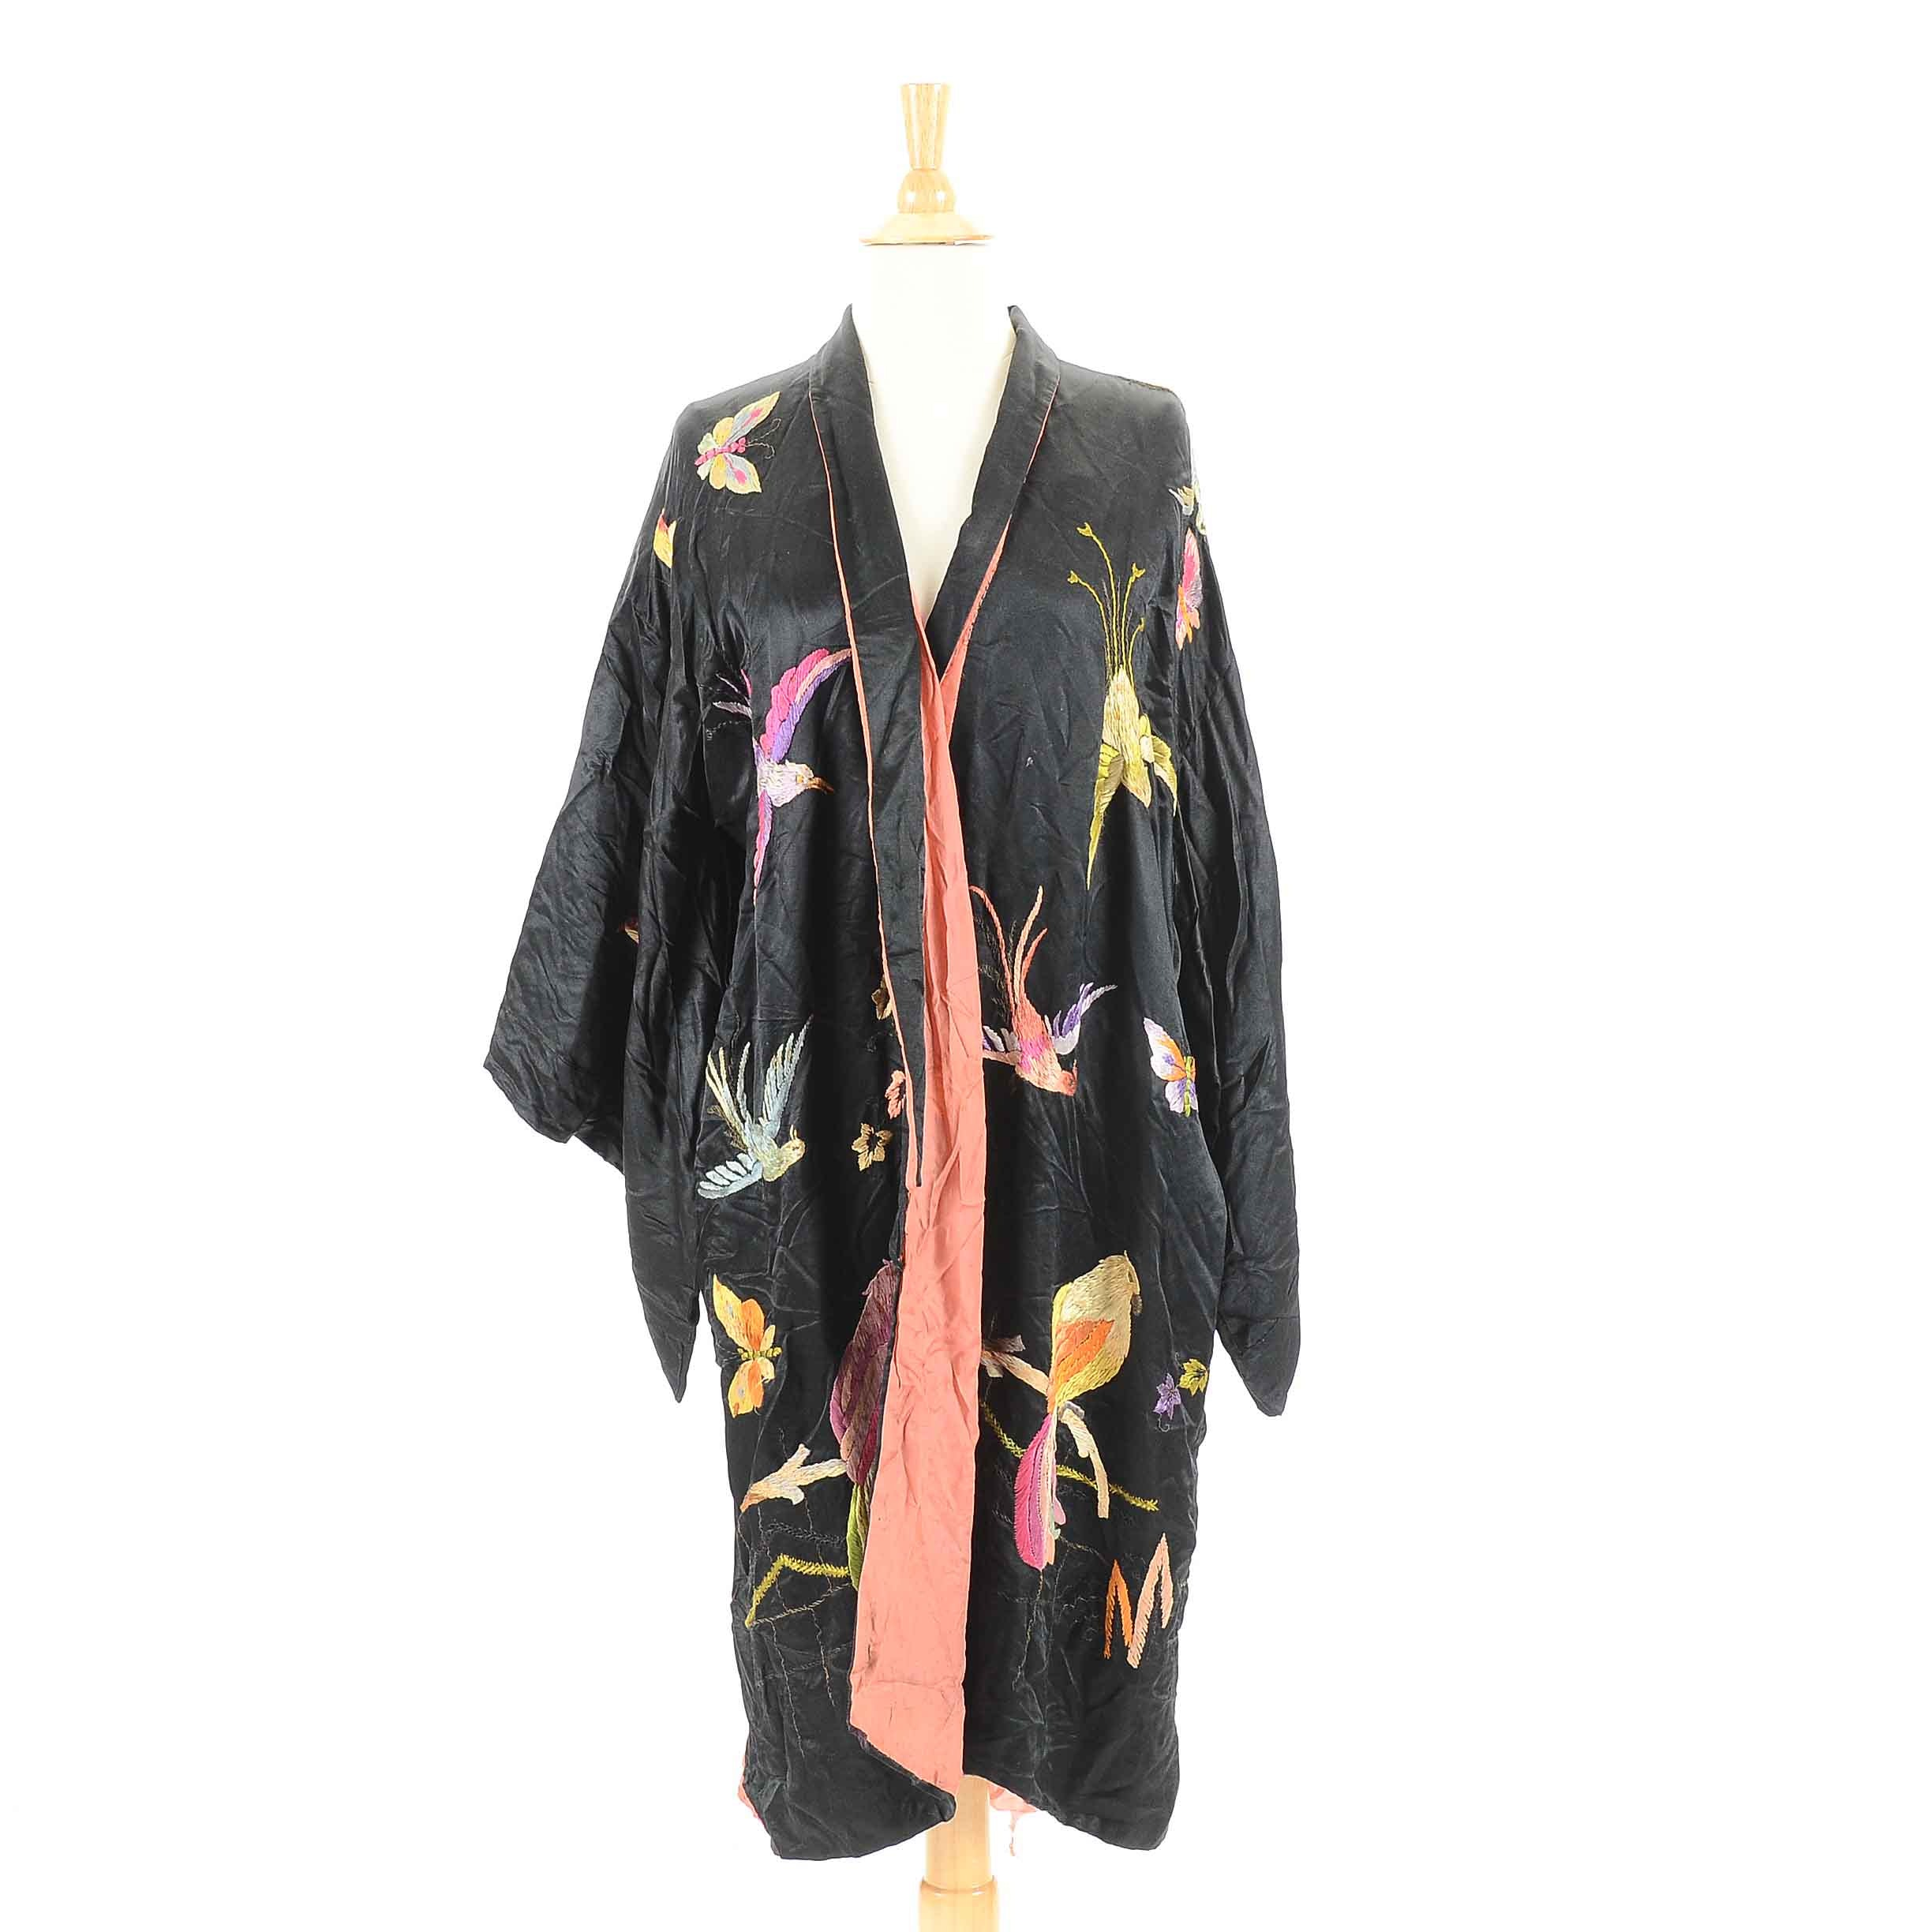 Vintage Embroidered Kimono Inspired Jacket